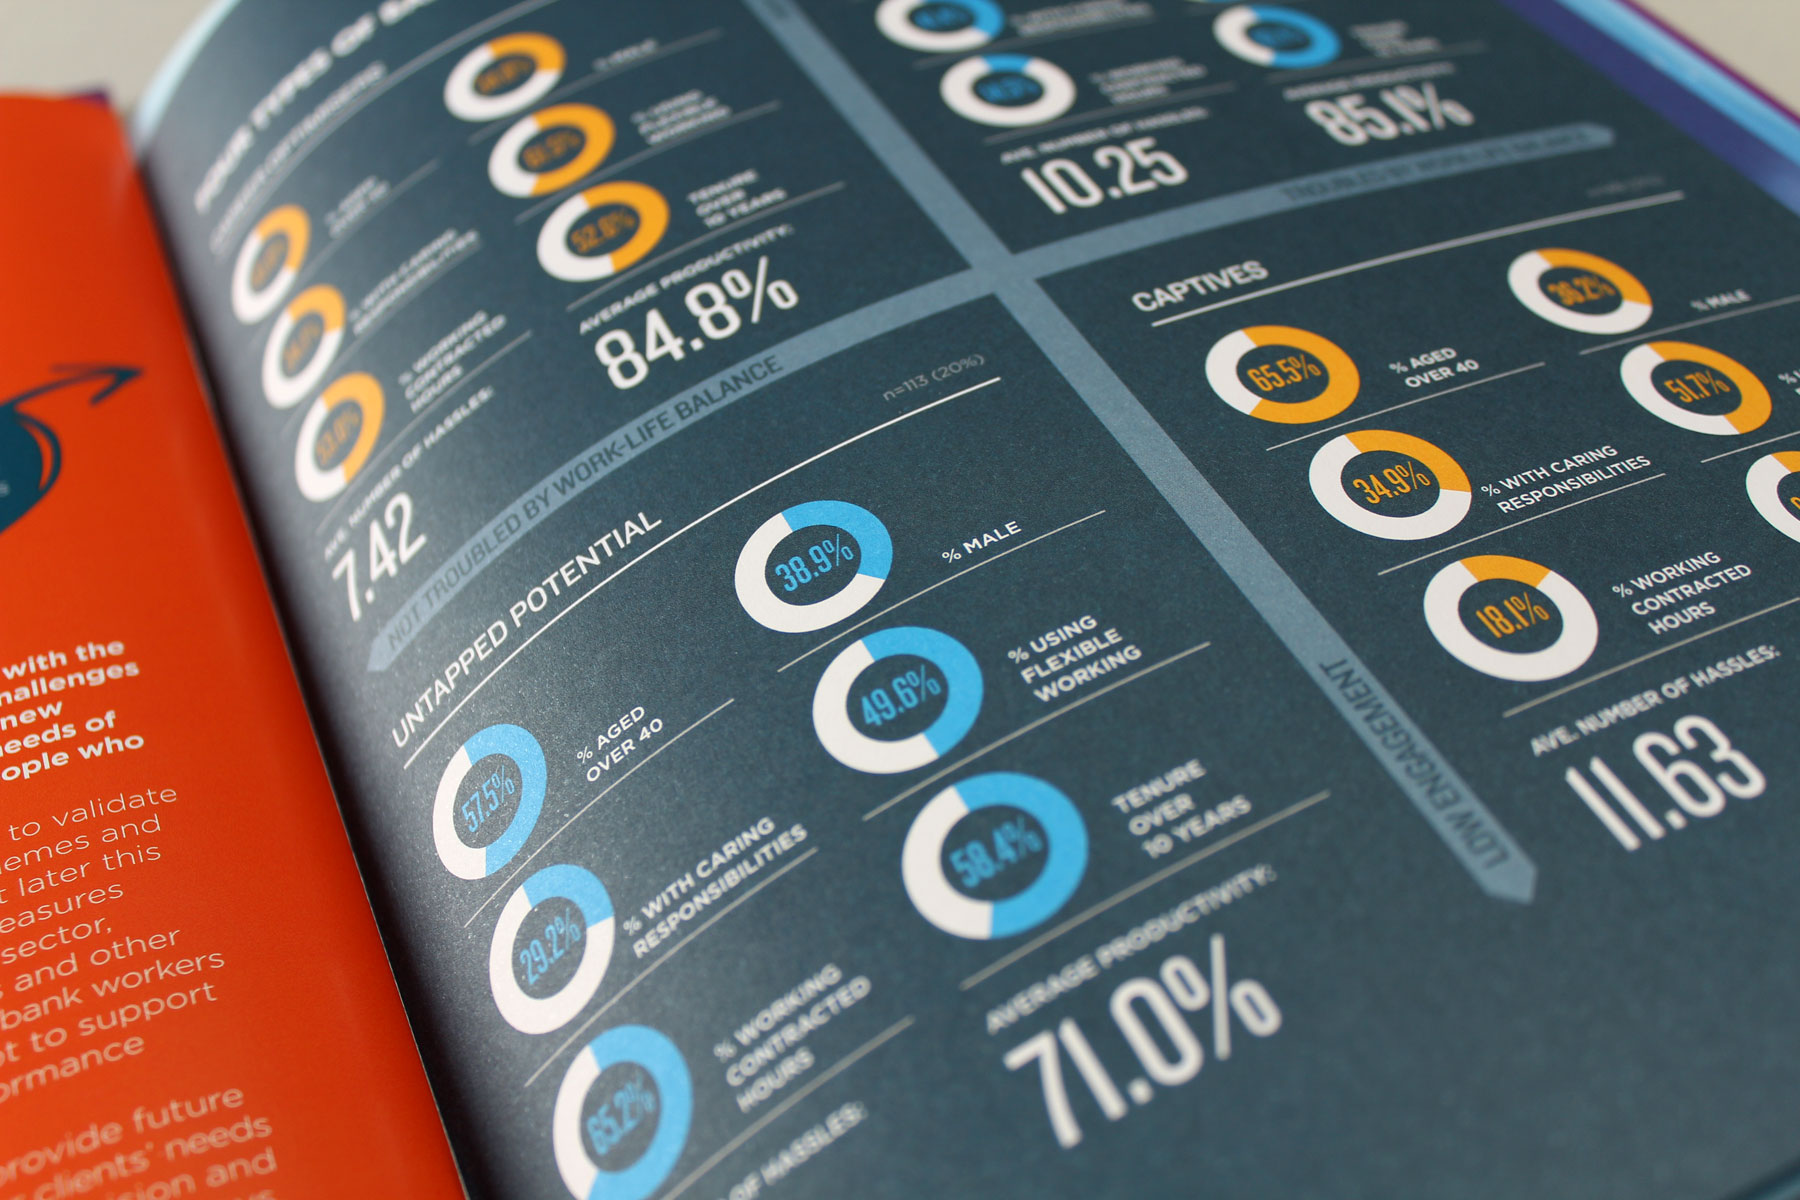 The BWC impact report contains a rich variety of charts and graphs